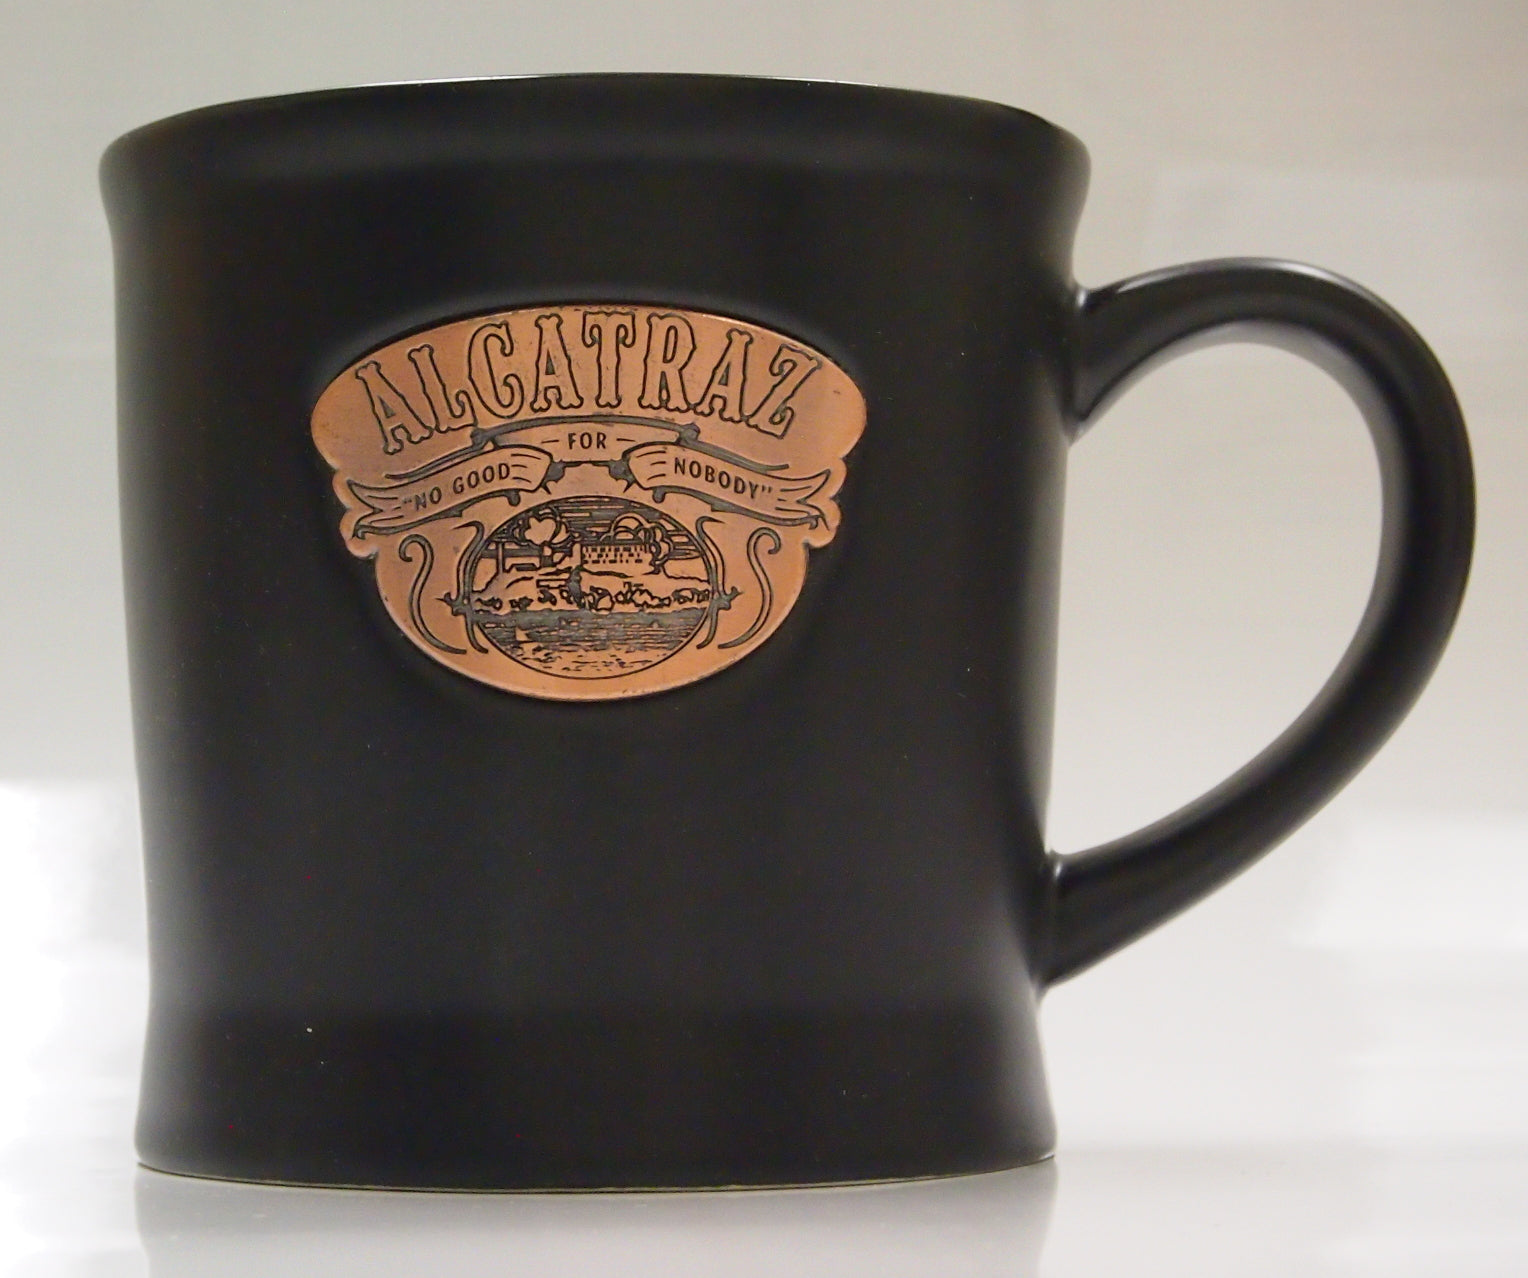 Large Black Ceramic Coffee Mug, with a Alcatraz badge on its side.